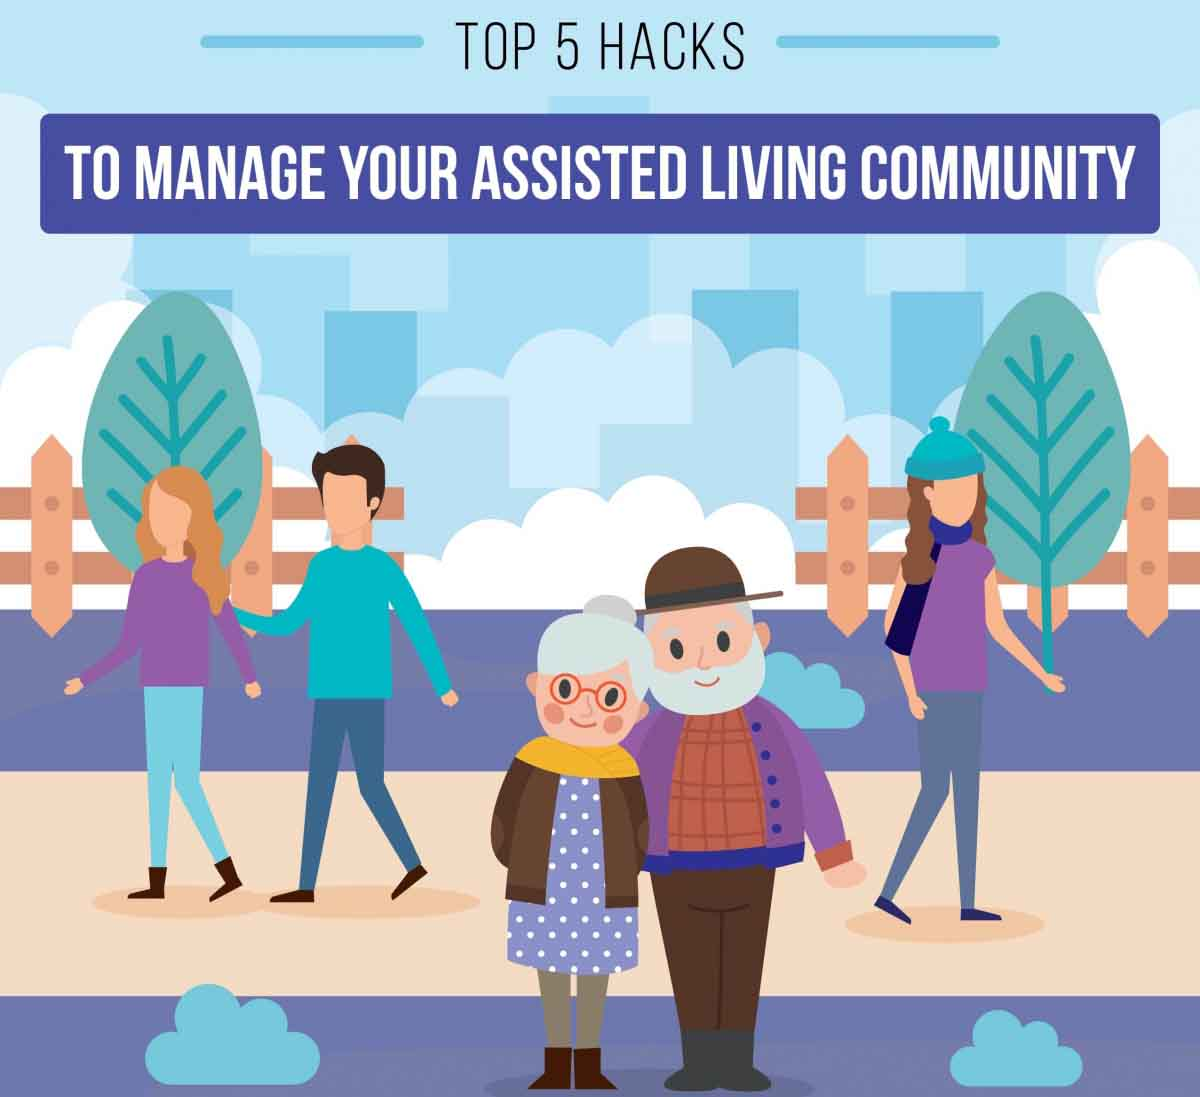 Top 5 Hacks to Manage Your Assisted Living Community